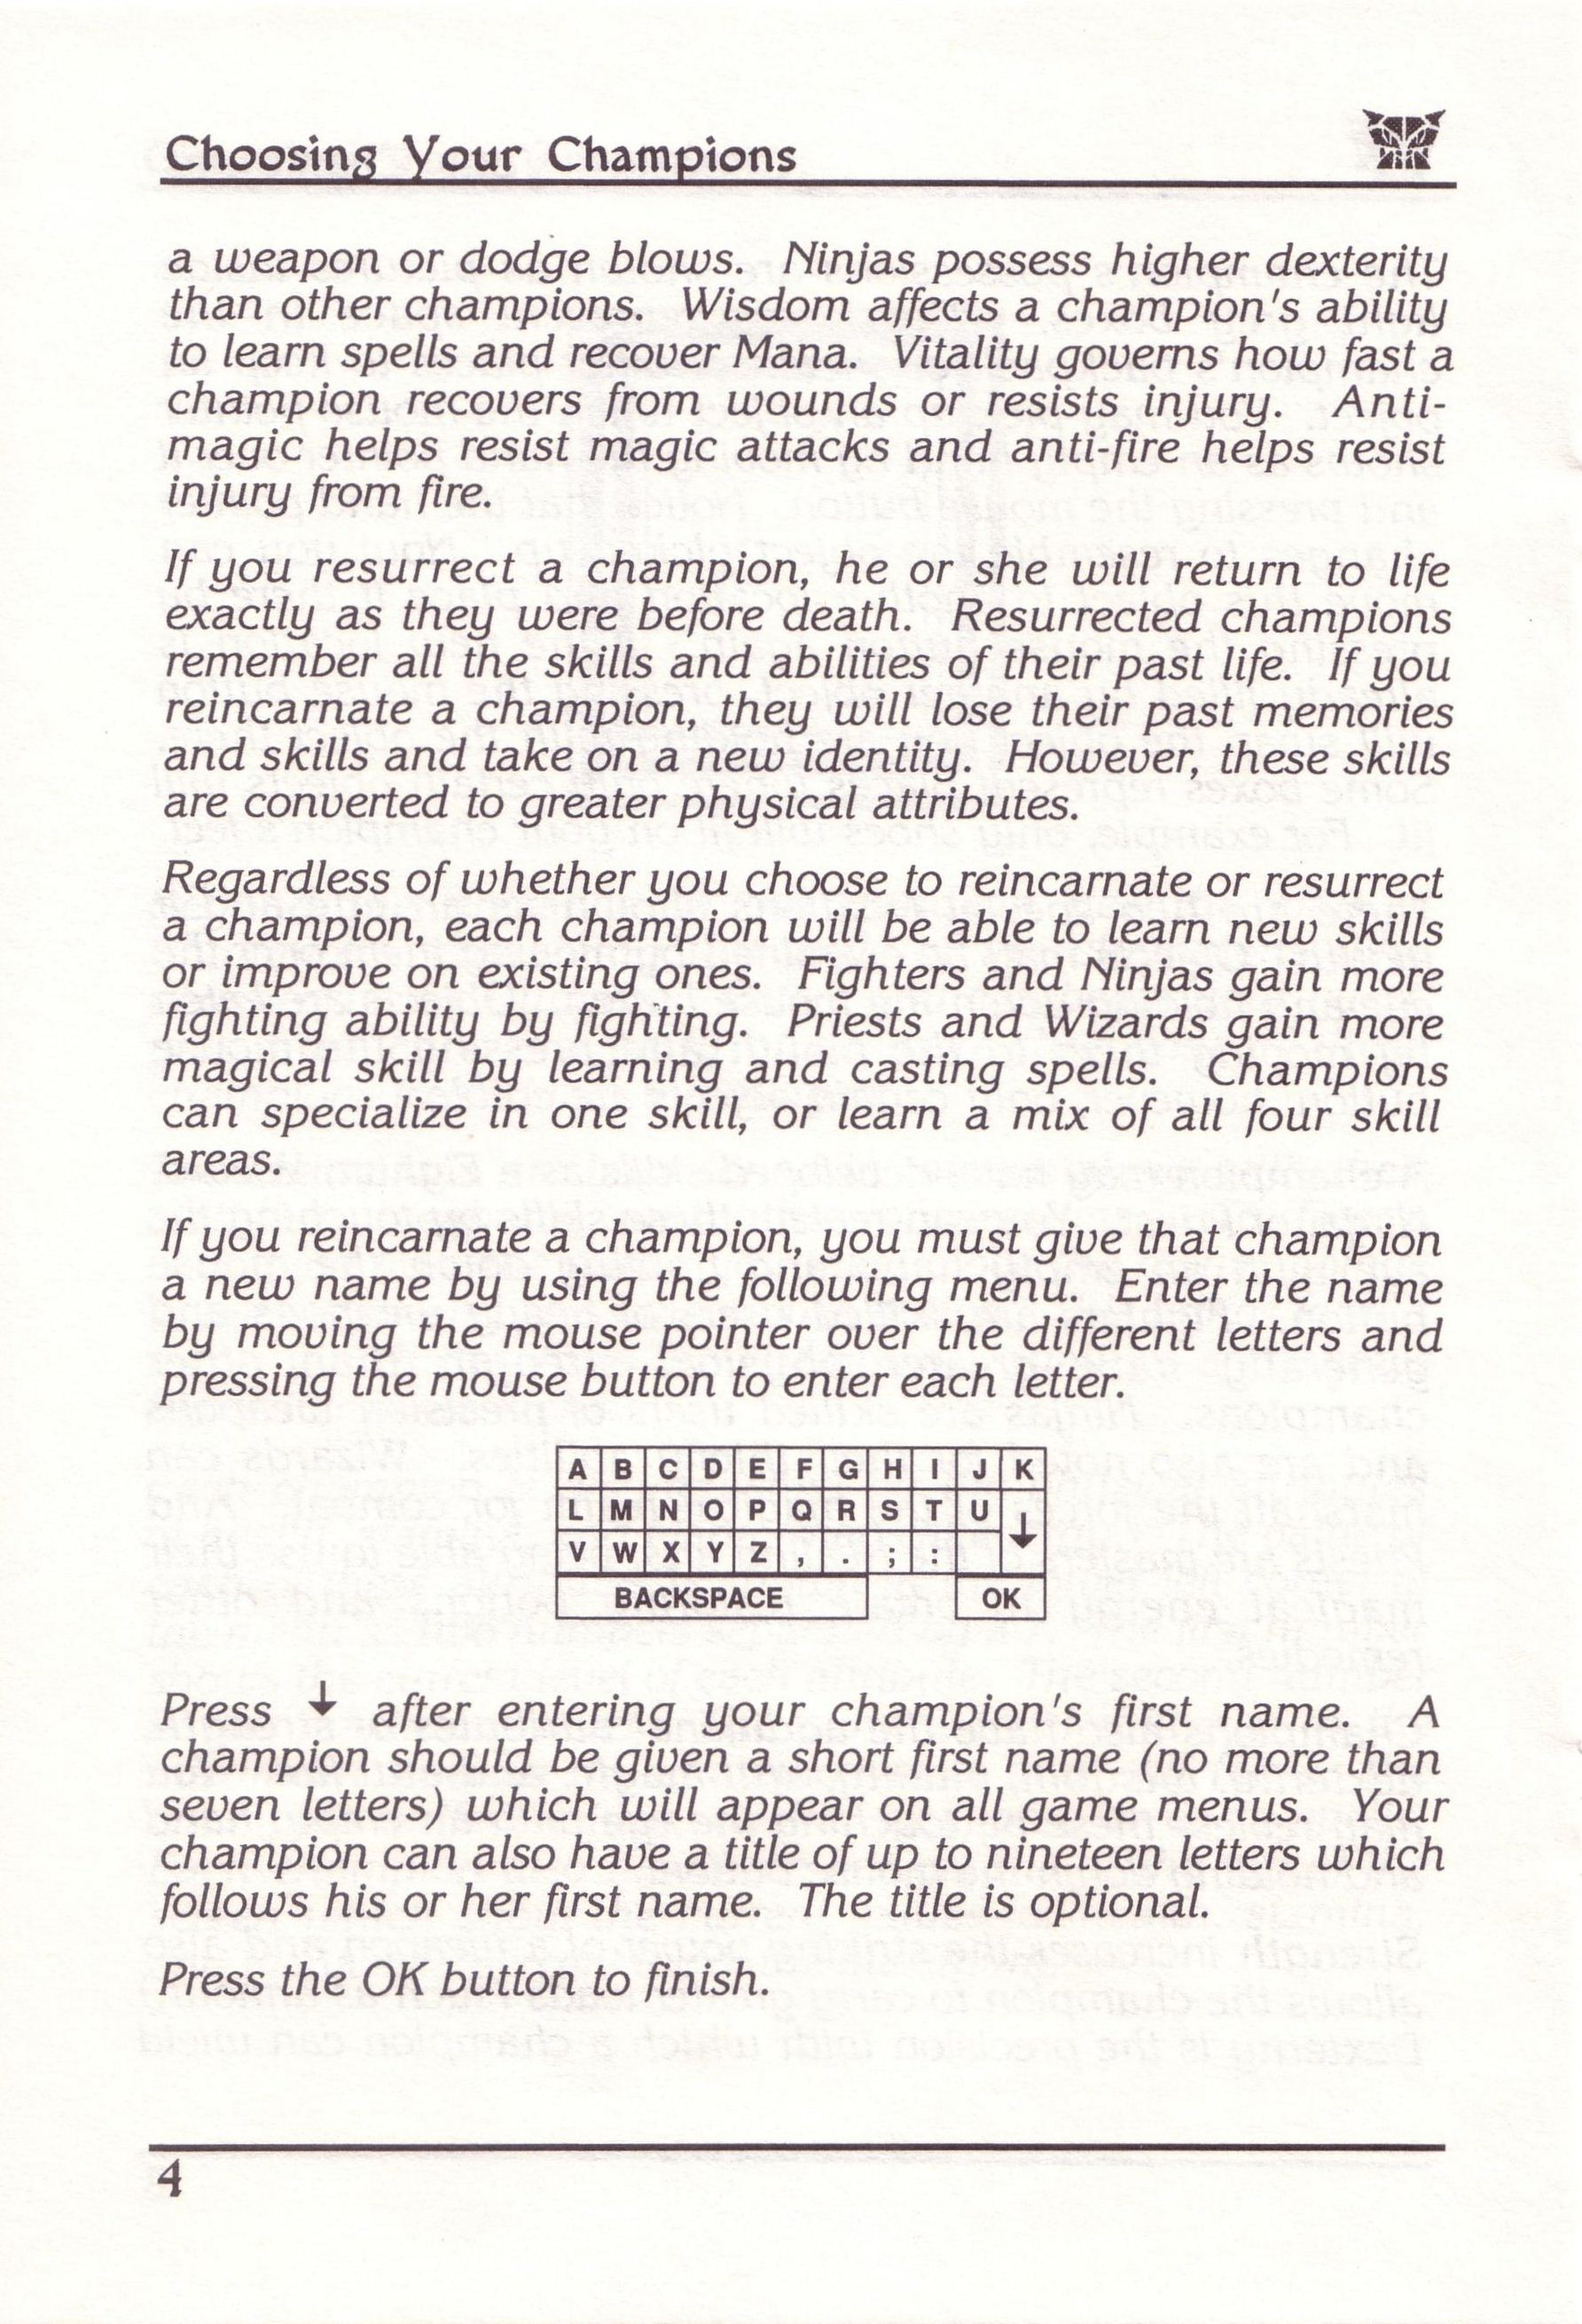 Dungeon Master for PC with FTL Sound Adapter (US Release) - Manual Page 28